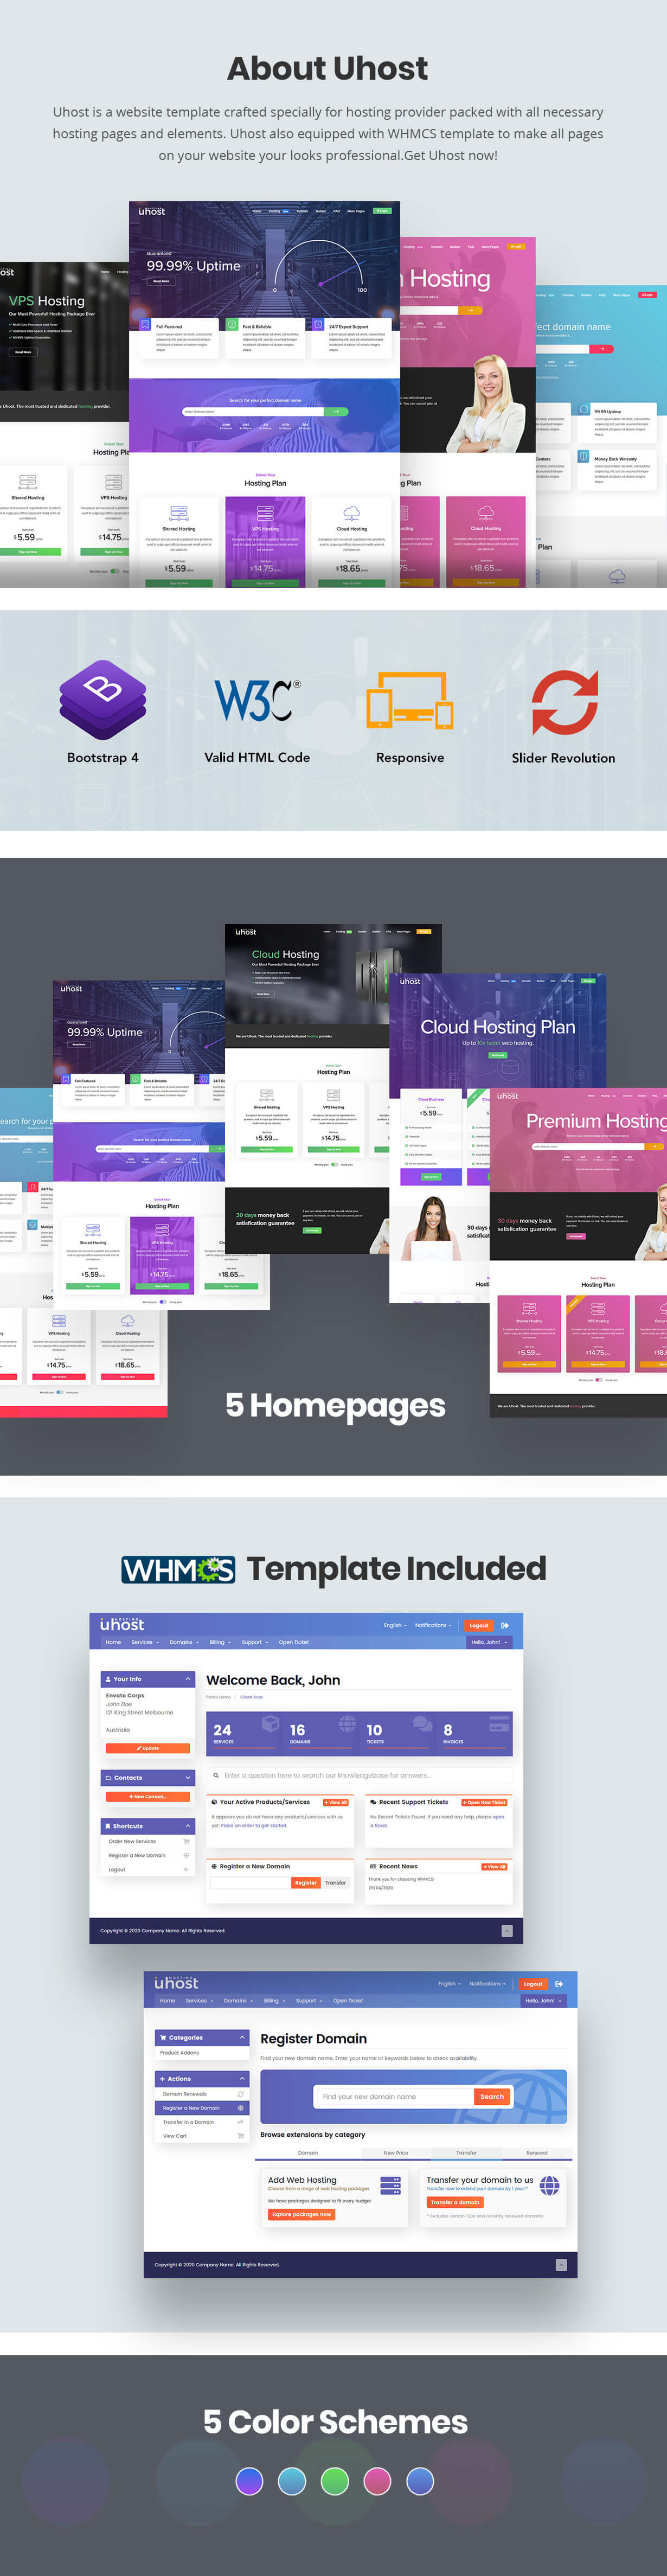 web hosting with whmcs template